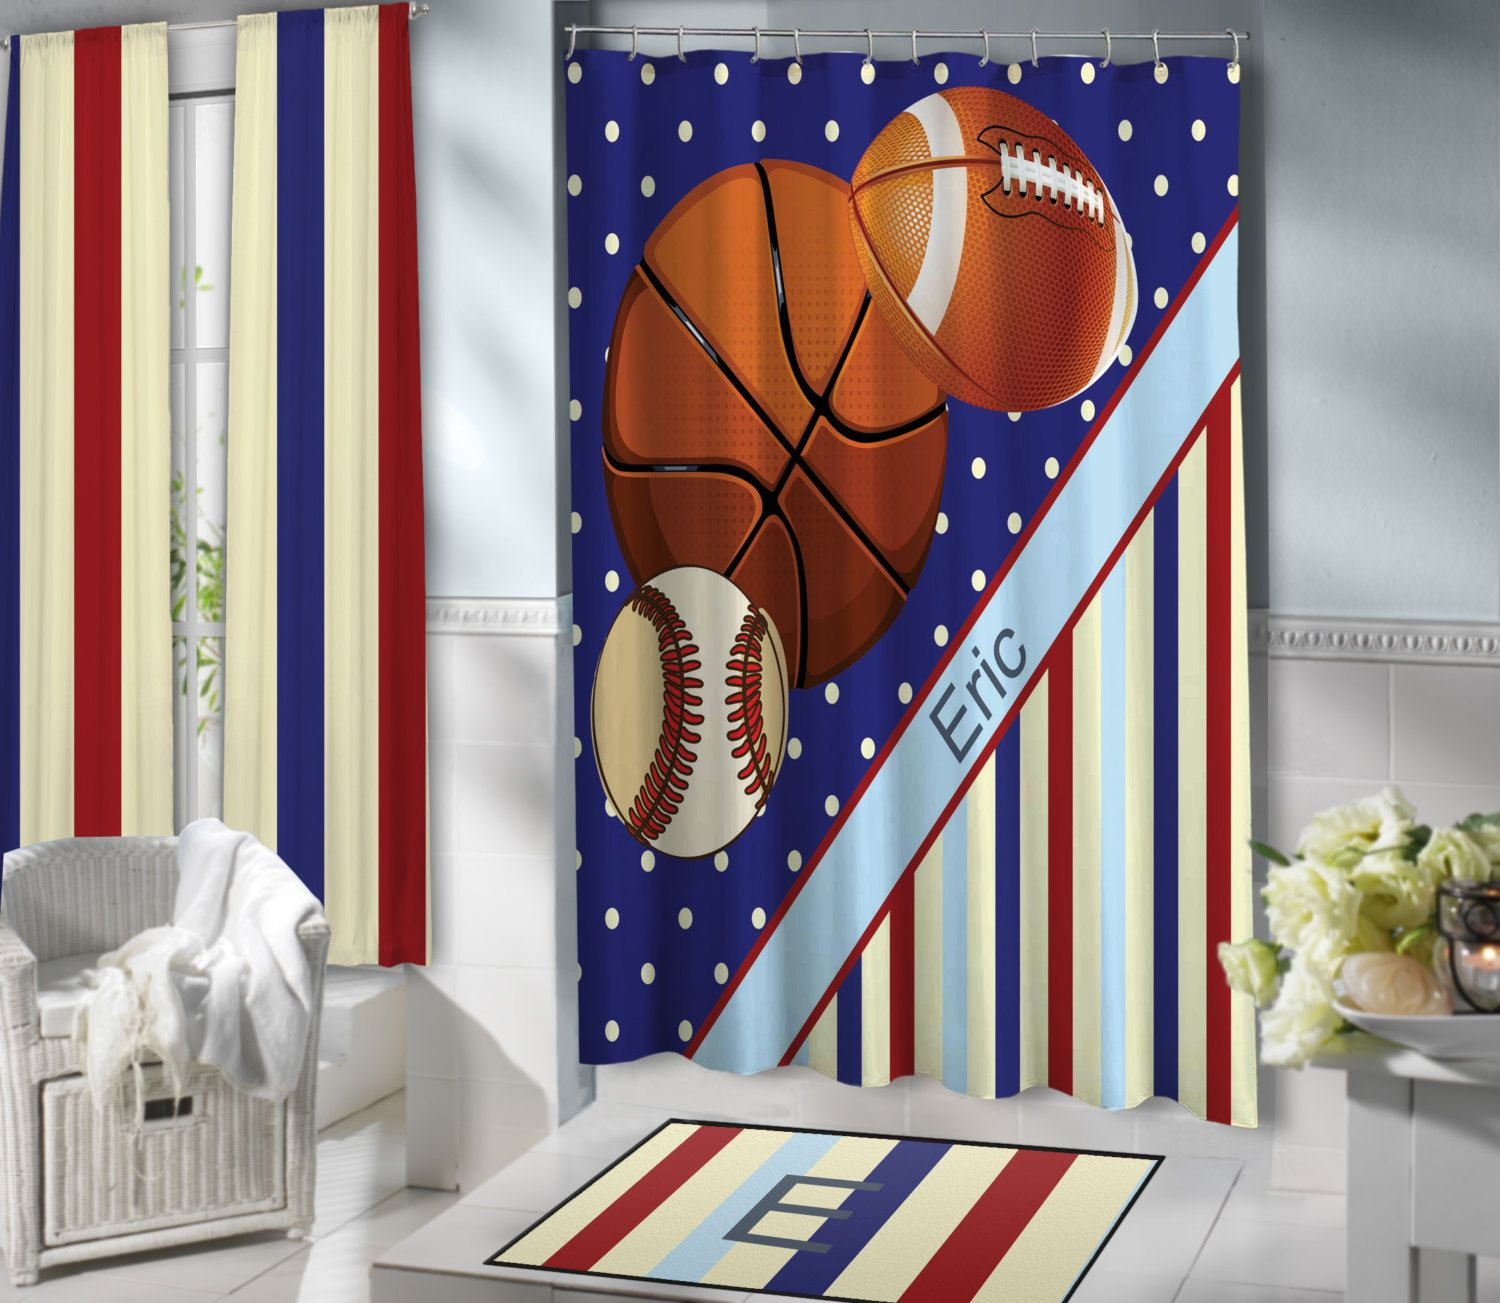 Sports Shower Curtains For Kids, Blue Baseball, Basketball U0026 Football Shower  Curtain, Polyester Fabric, Teen Boys Striped Curtain By EloquentInnovations  On ...